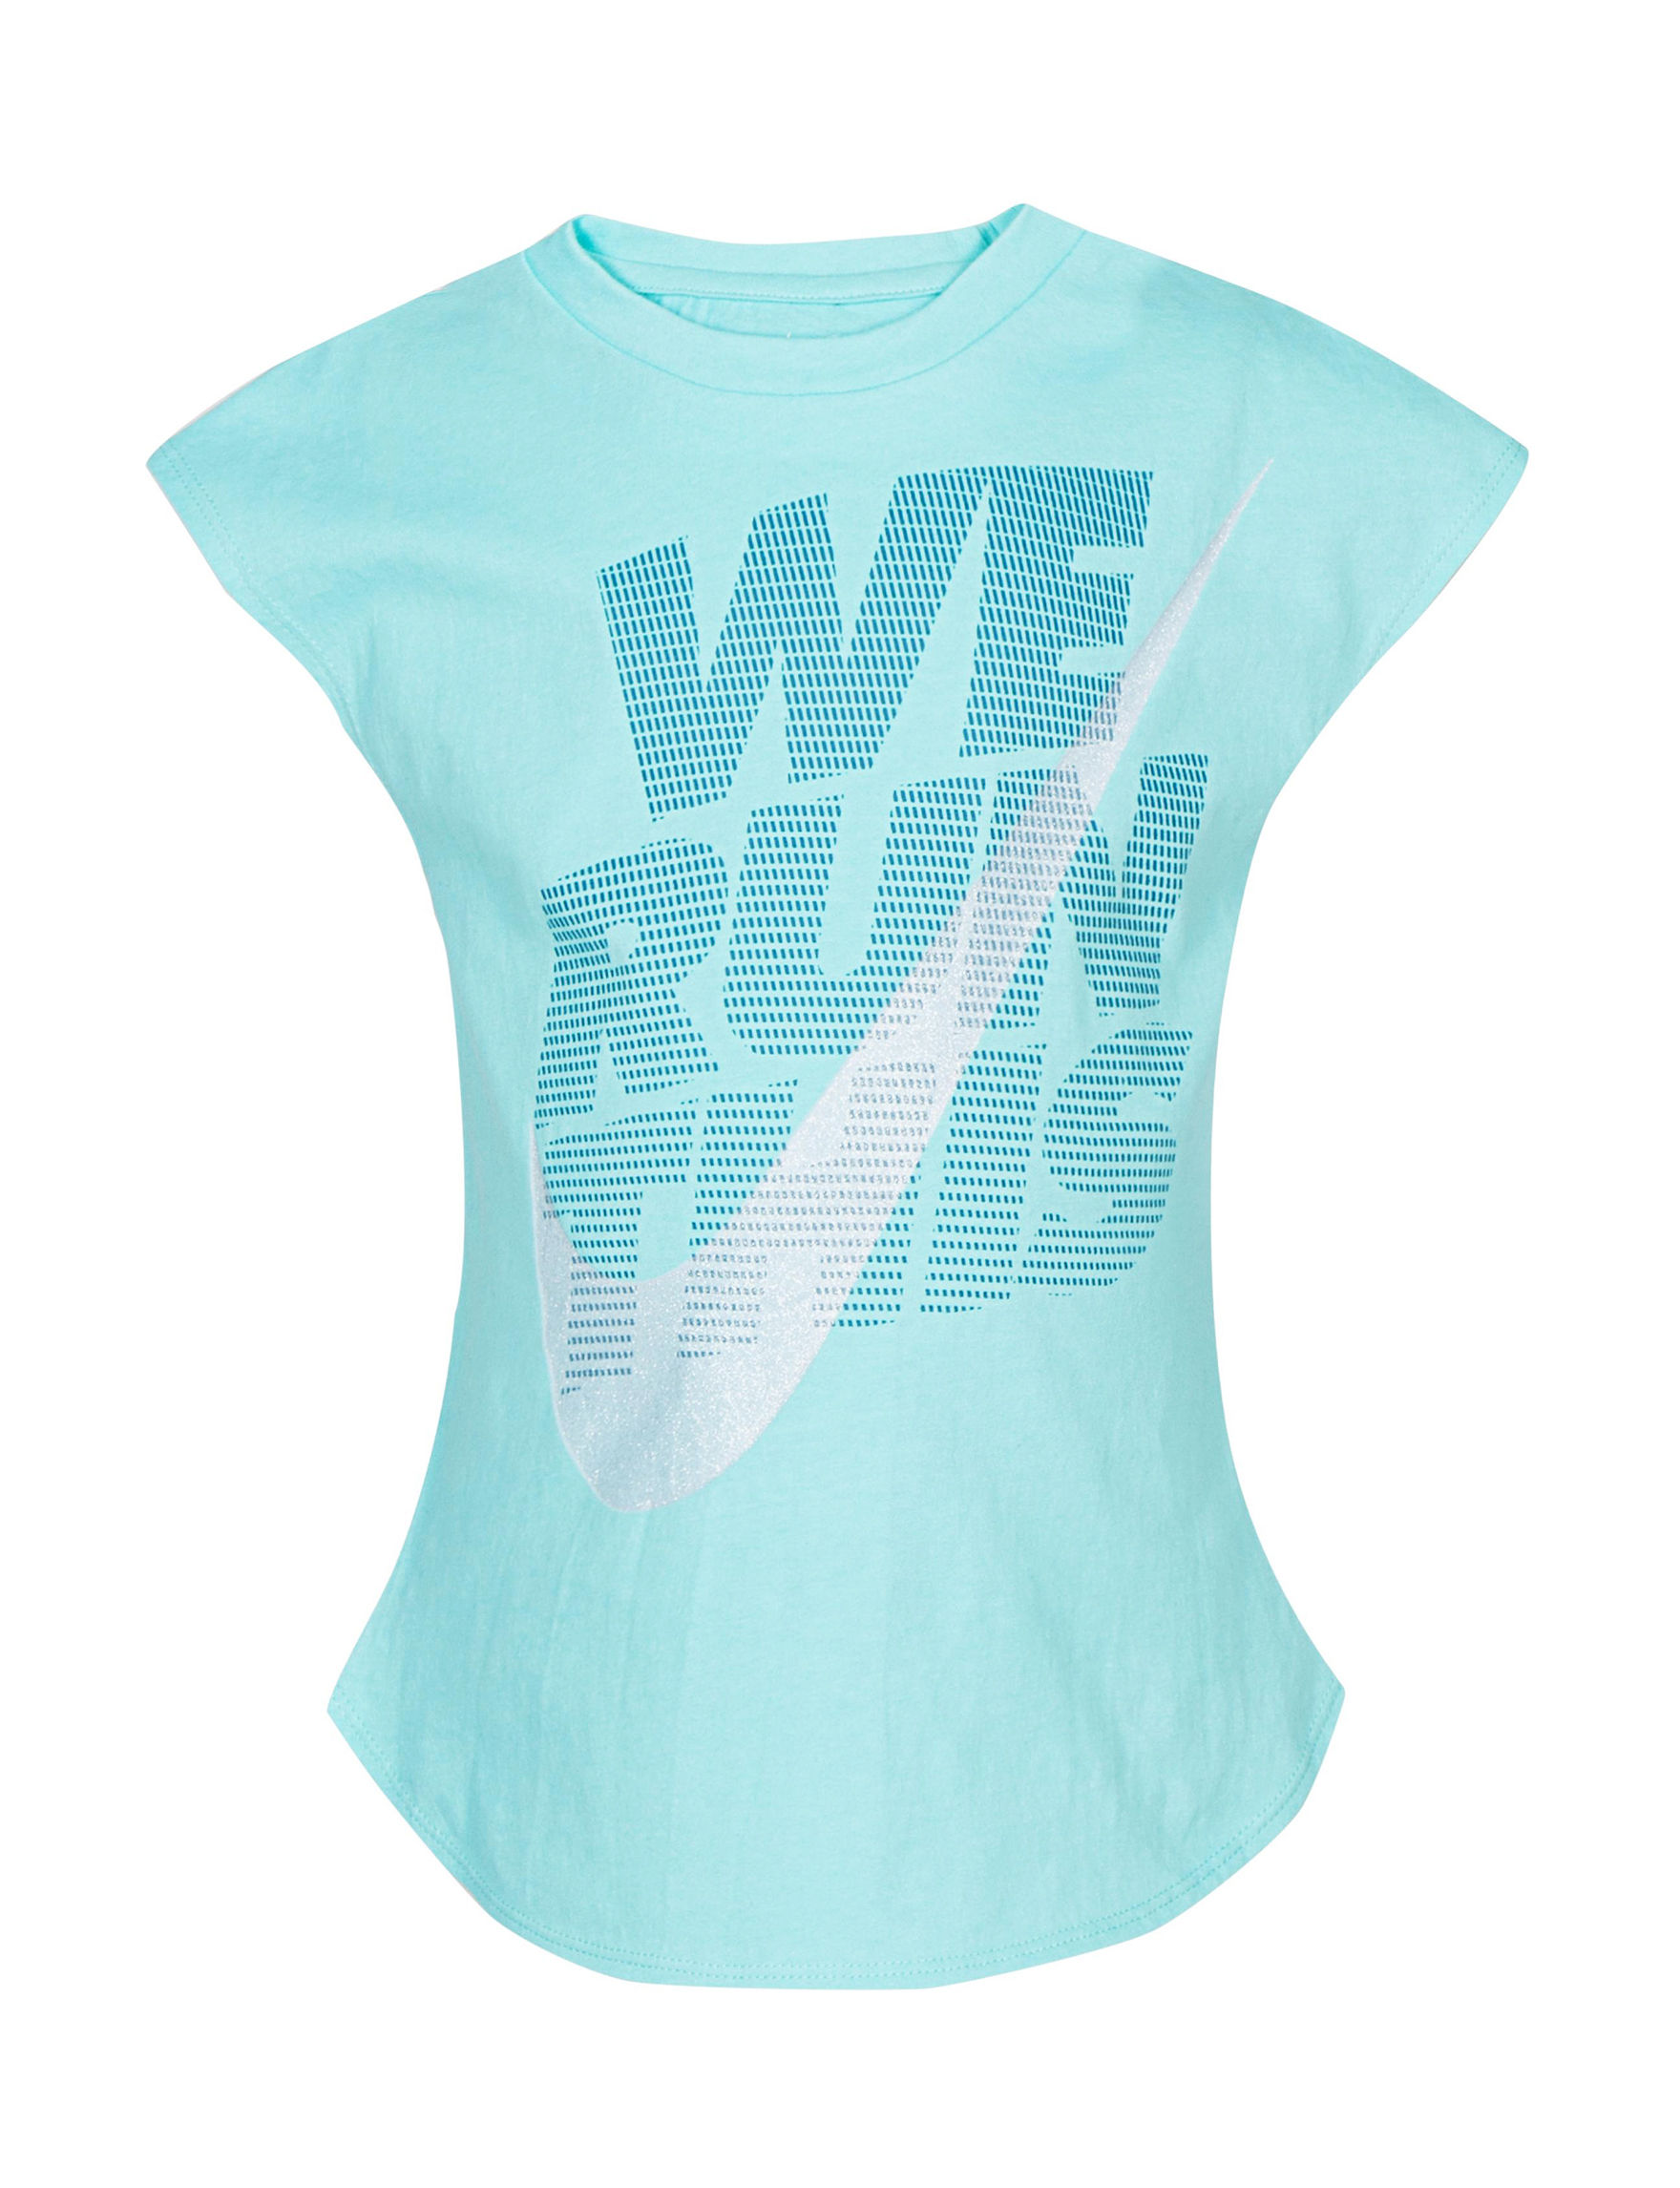 Nike Light Aqua Tees & Tanks